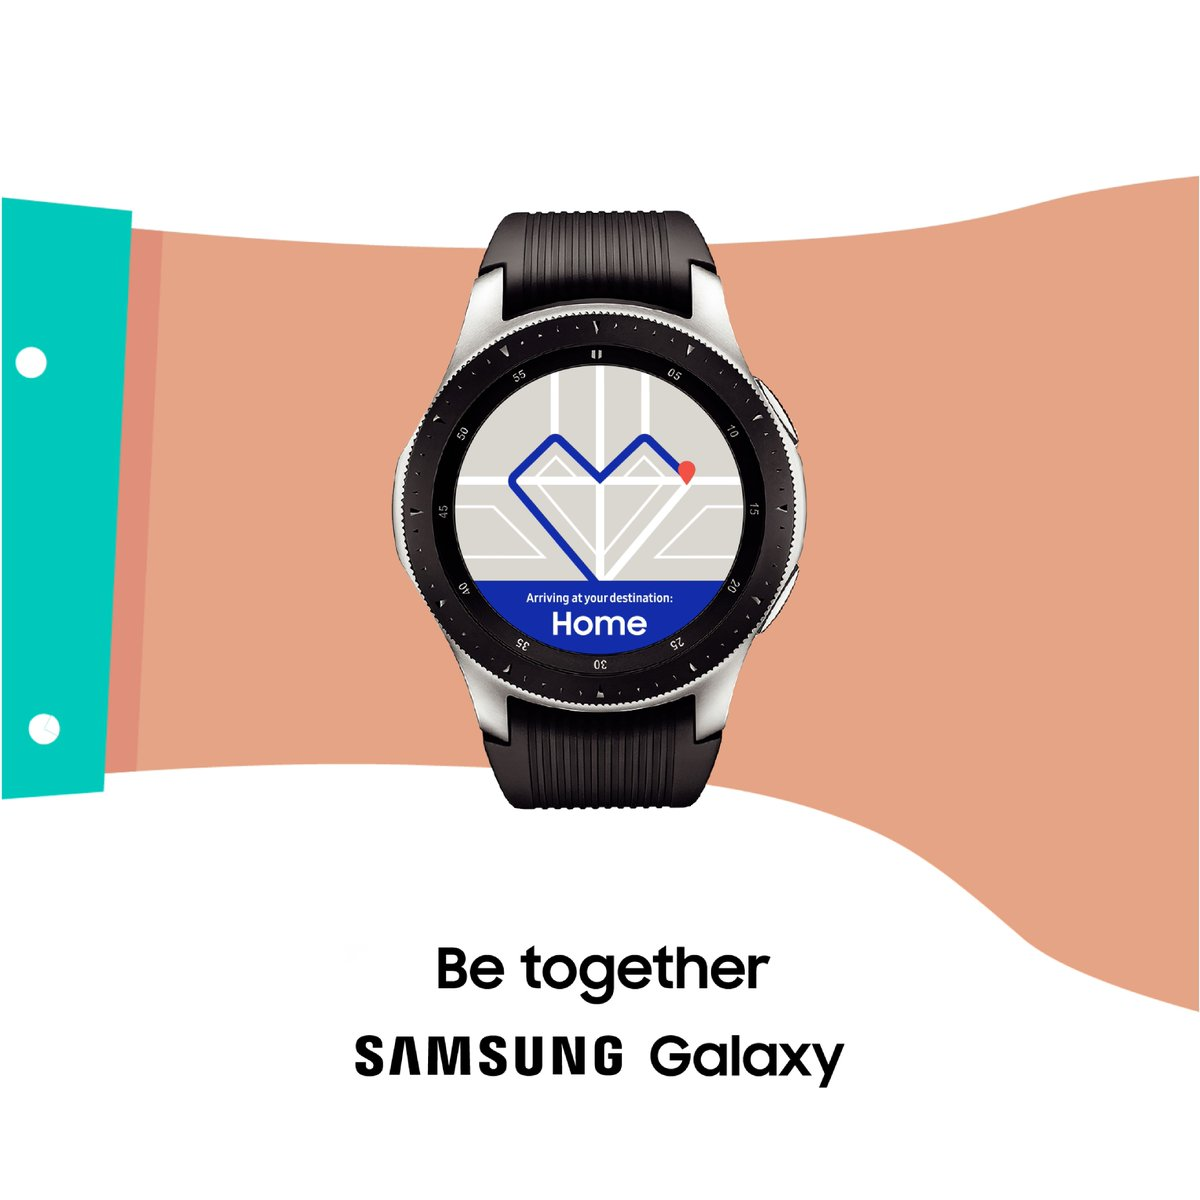 Not just the gift of time. The gift of a lasting connection. Be together with #GalaxyWatch.  Learn more: http://smsng.co/Holiday_kat